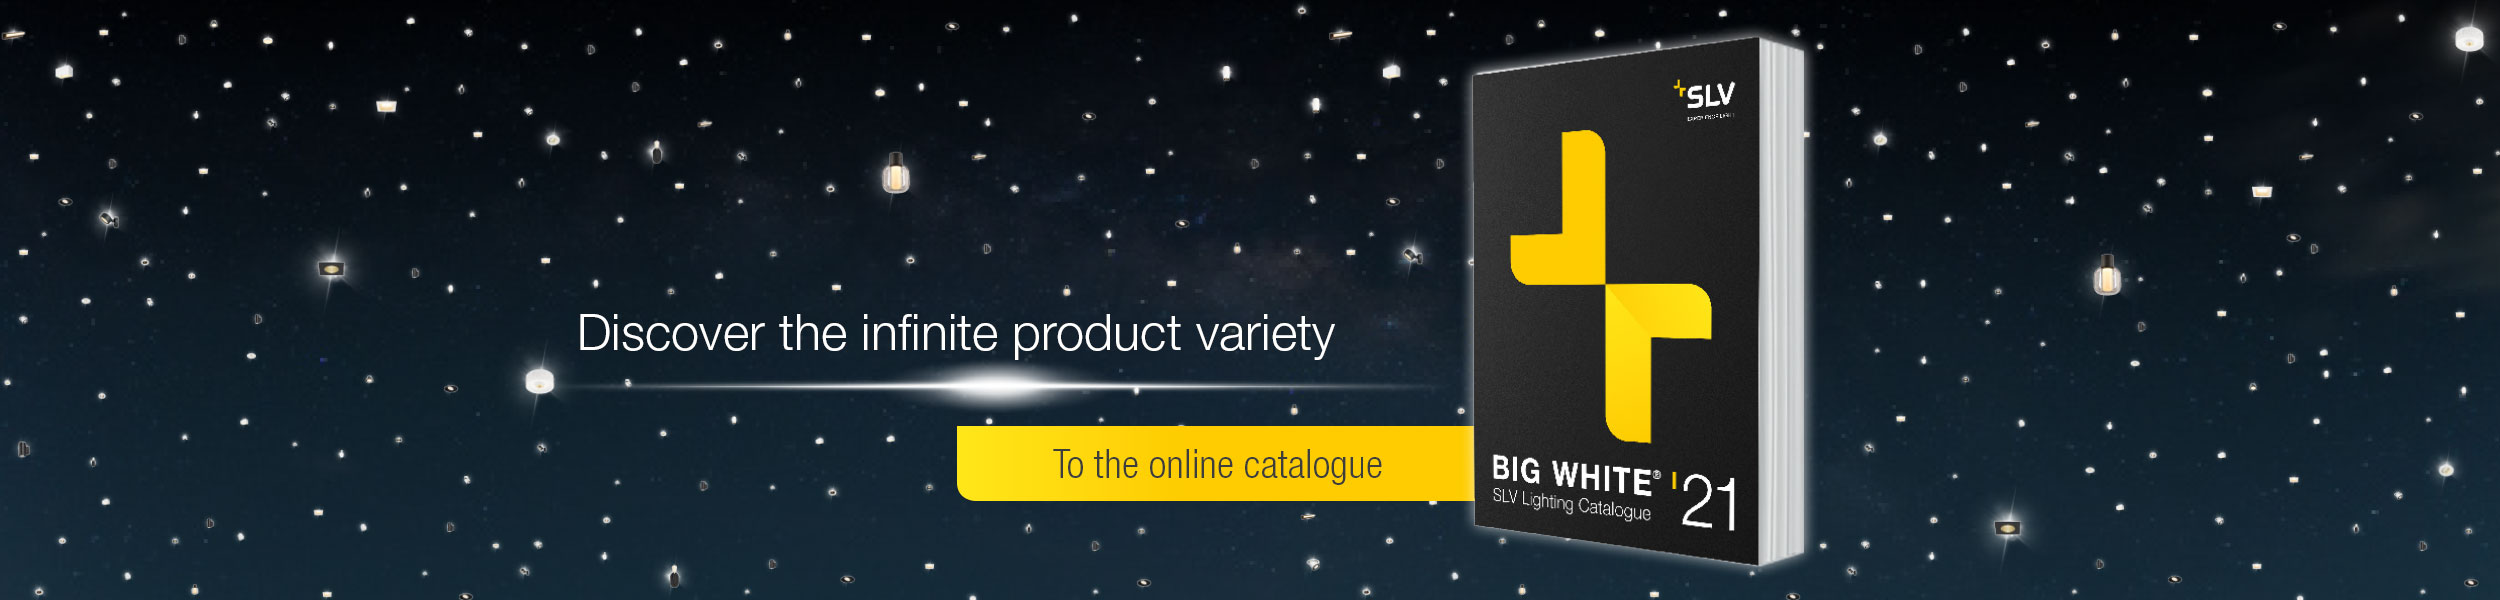 Nouveau catalogue SLV: Big White® 2021